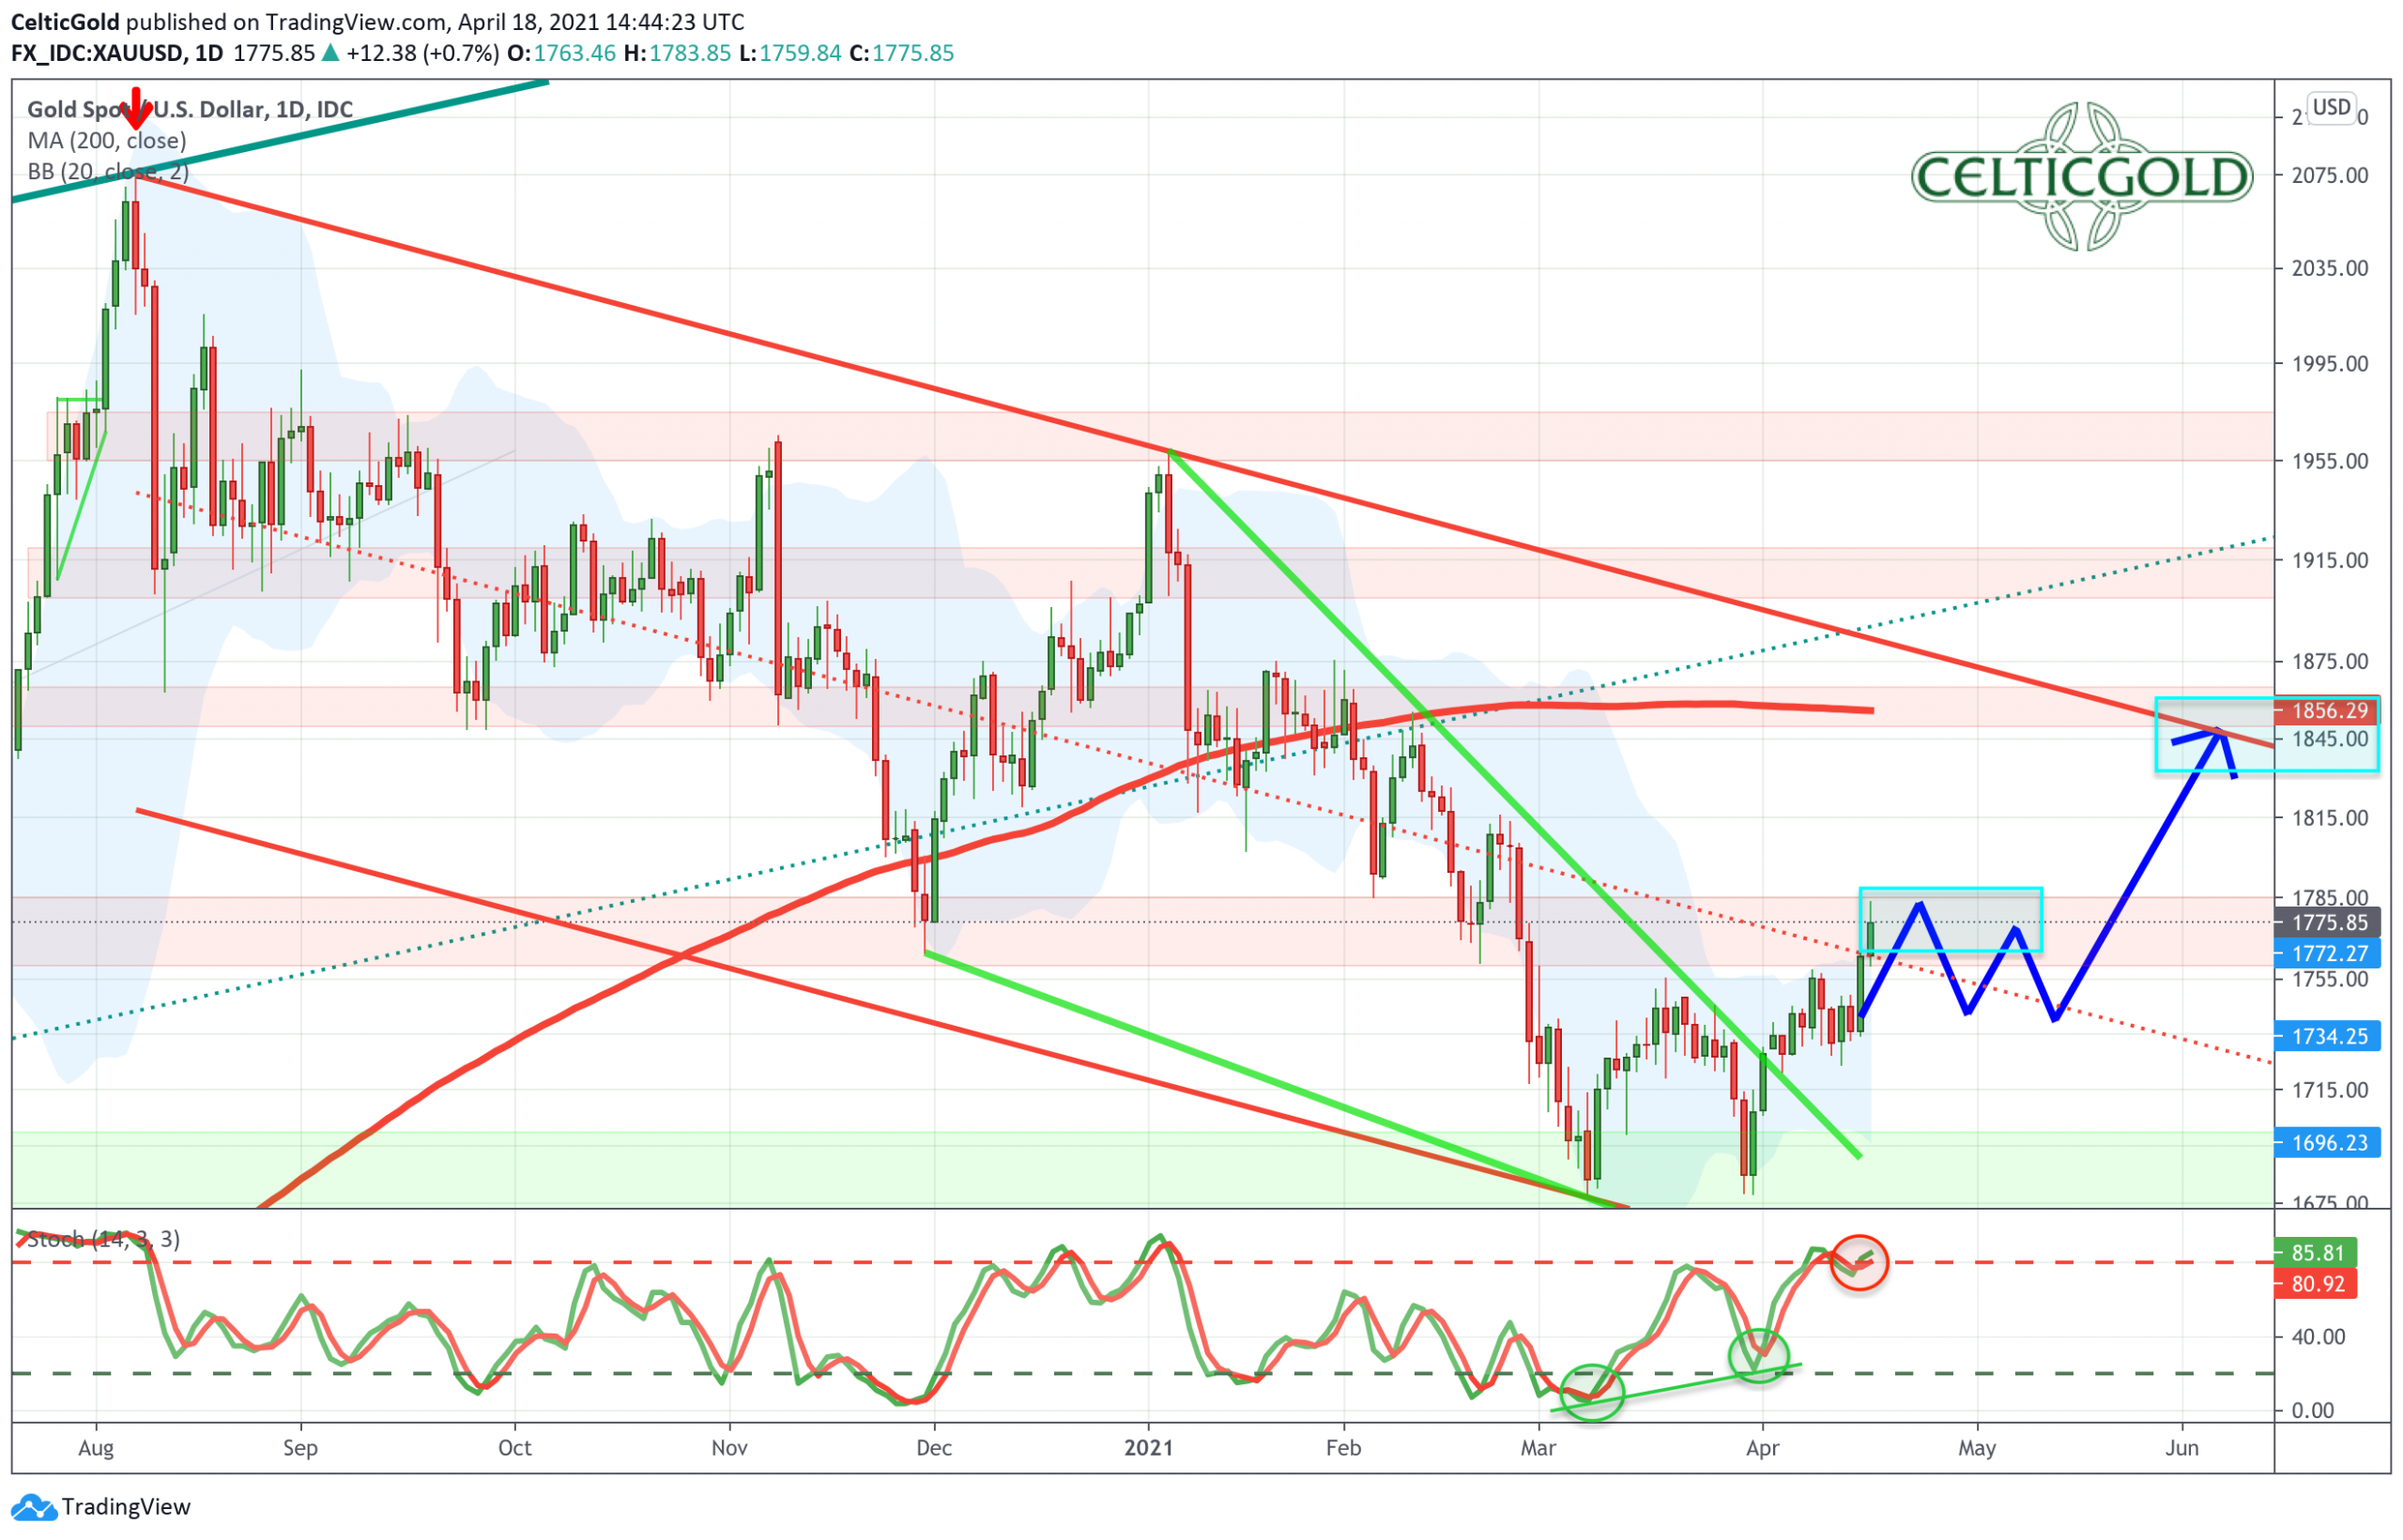 Gold in US-Dollars, daily chart as of April 18th, 2021. Source: Tradingview. Gold- The turnaround has started.